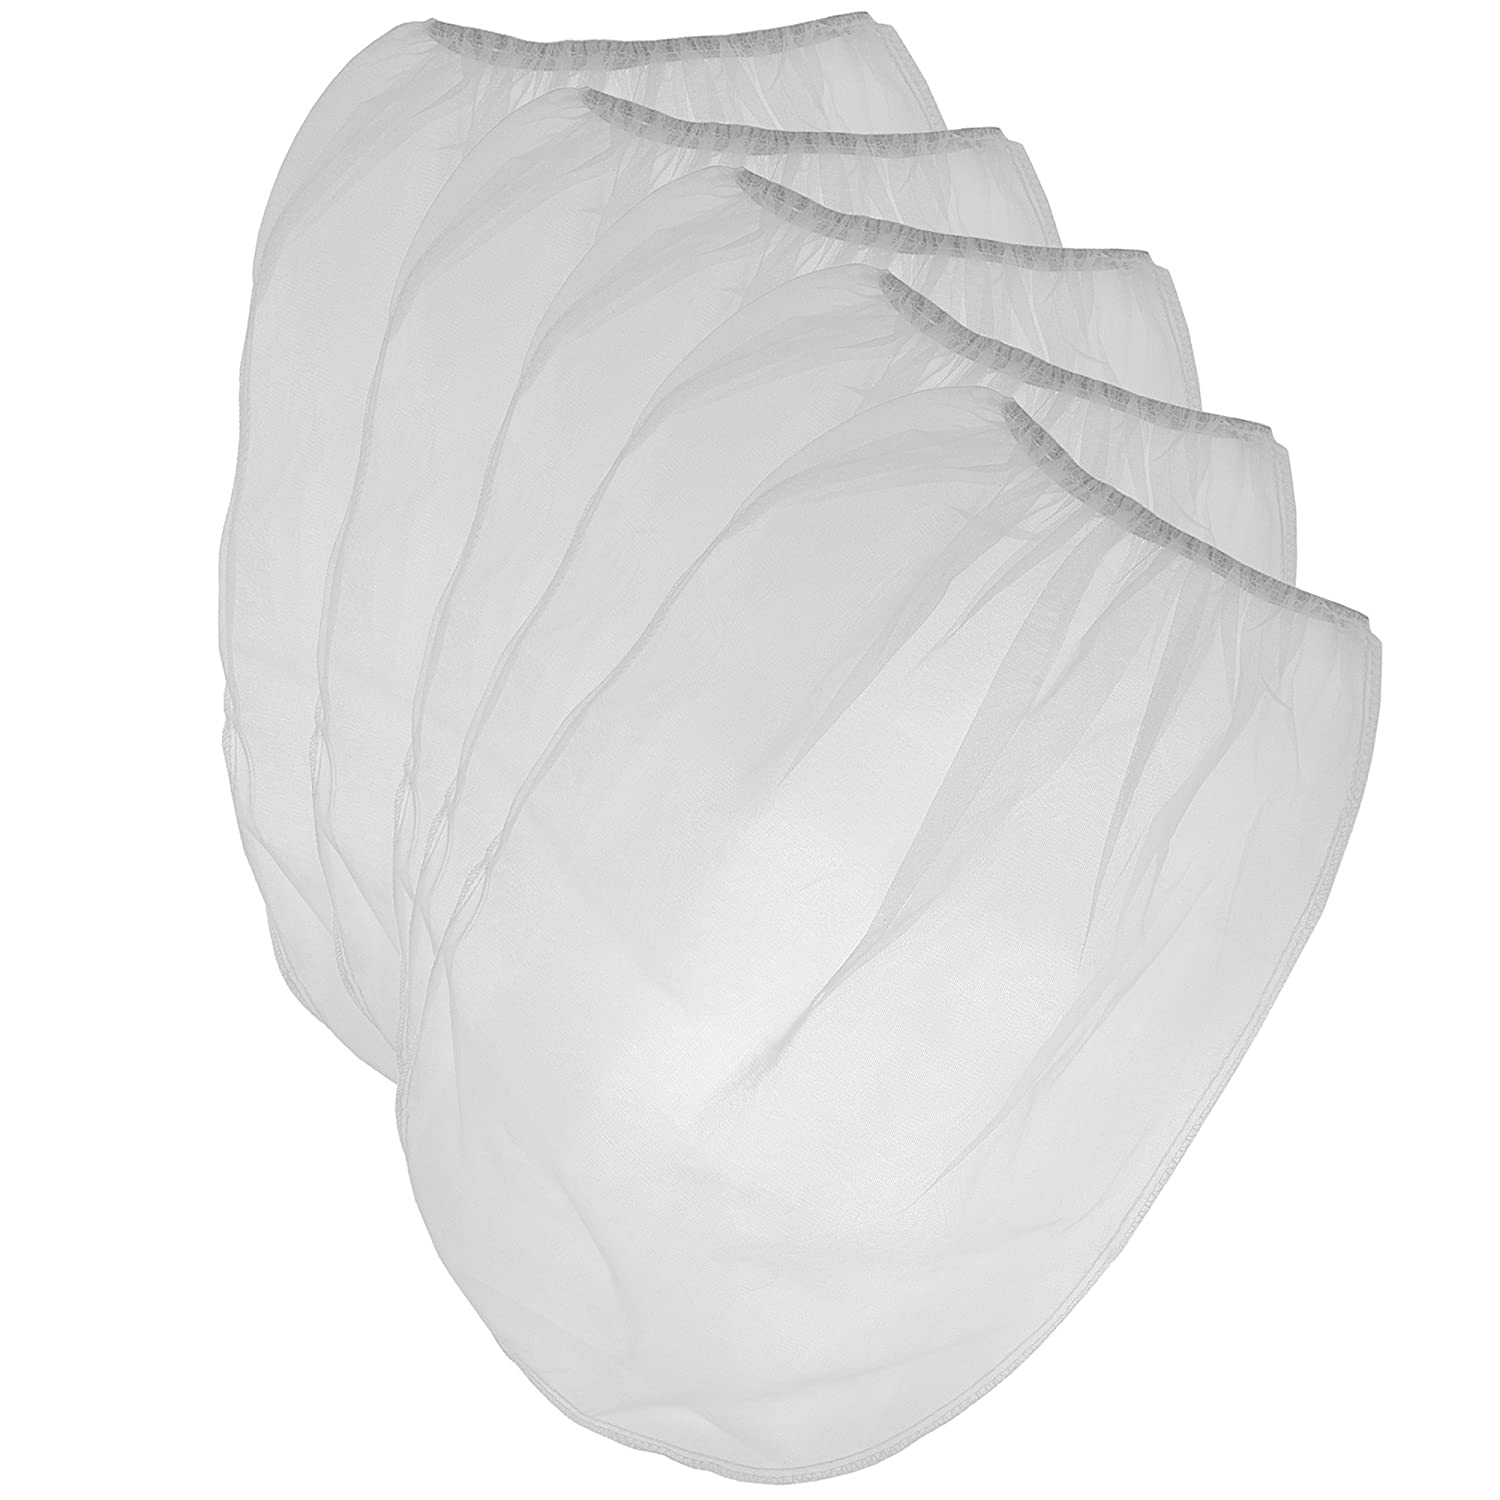 Pack of 25 Paint Strainer White Fine Mesh Disposable Bag Filters with Elastic Top Opening - 5 Gallon Bucket Size for Use with Paint Guns and Sprayers - by California Containers